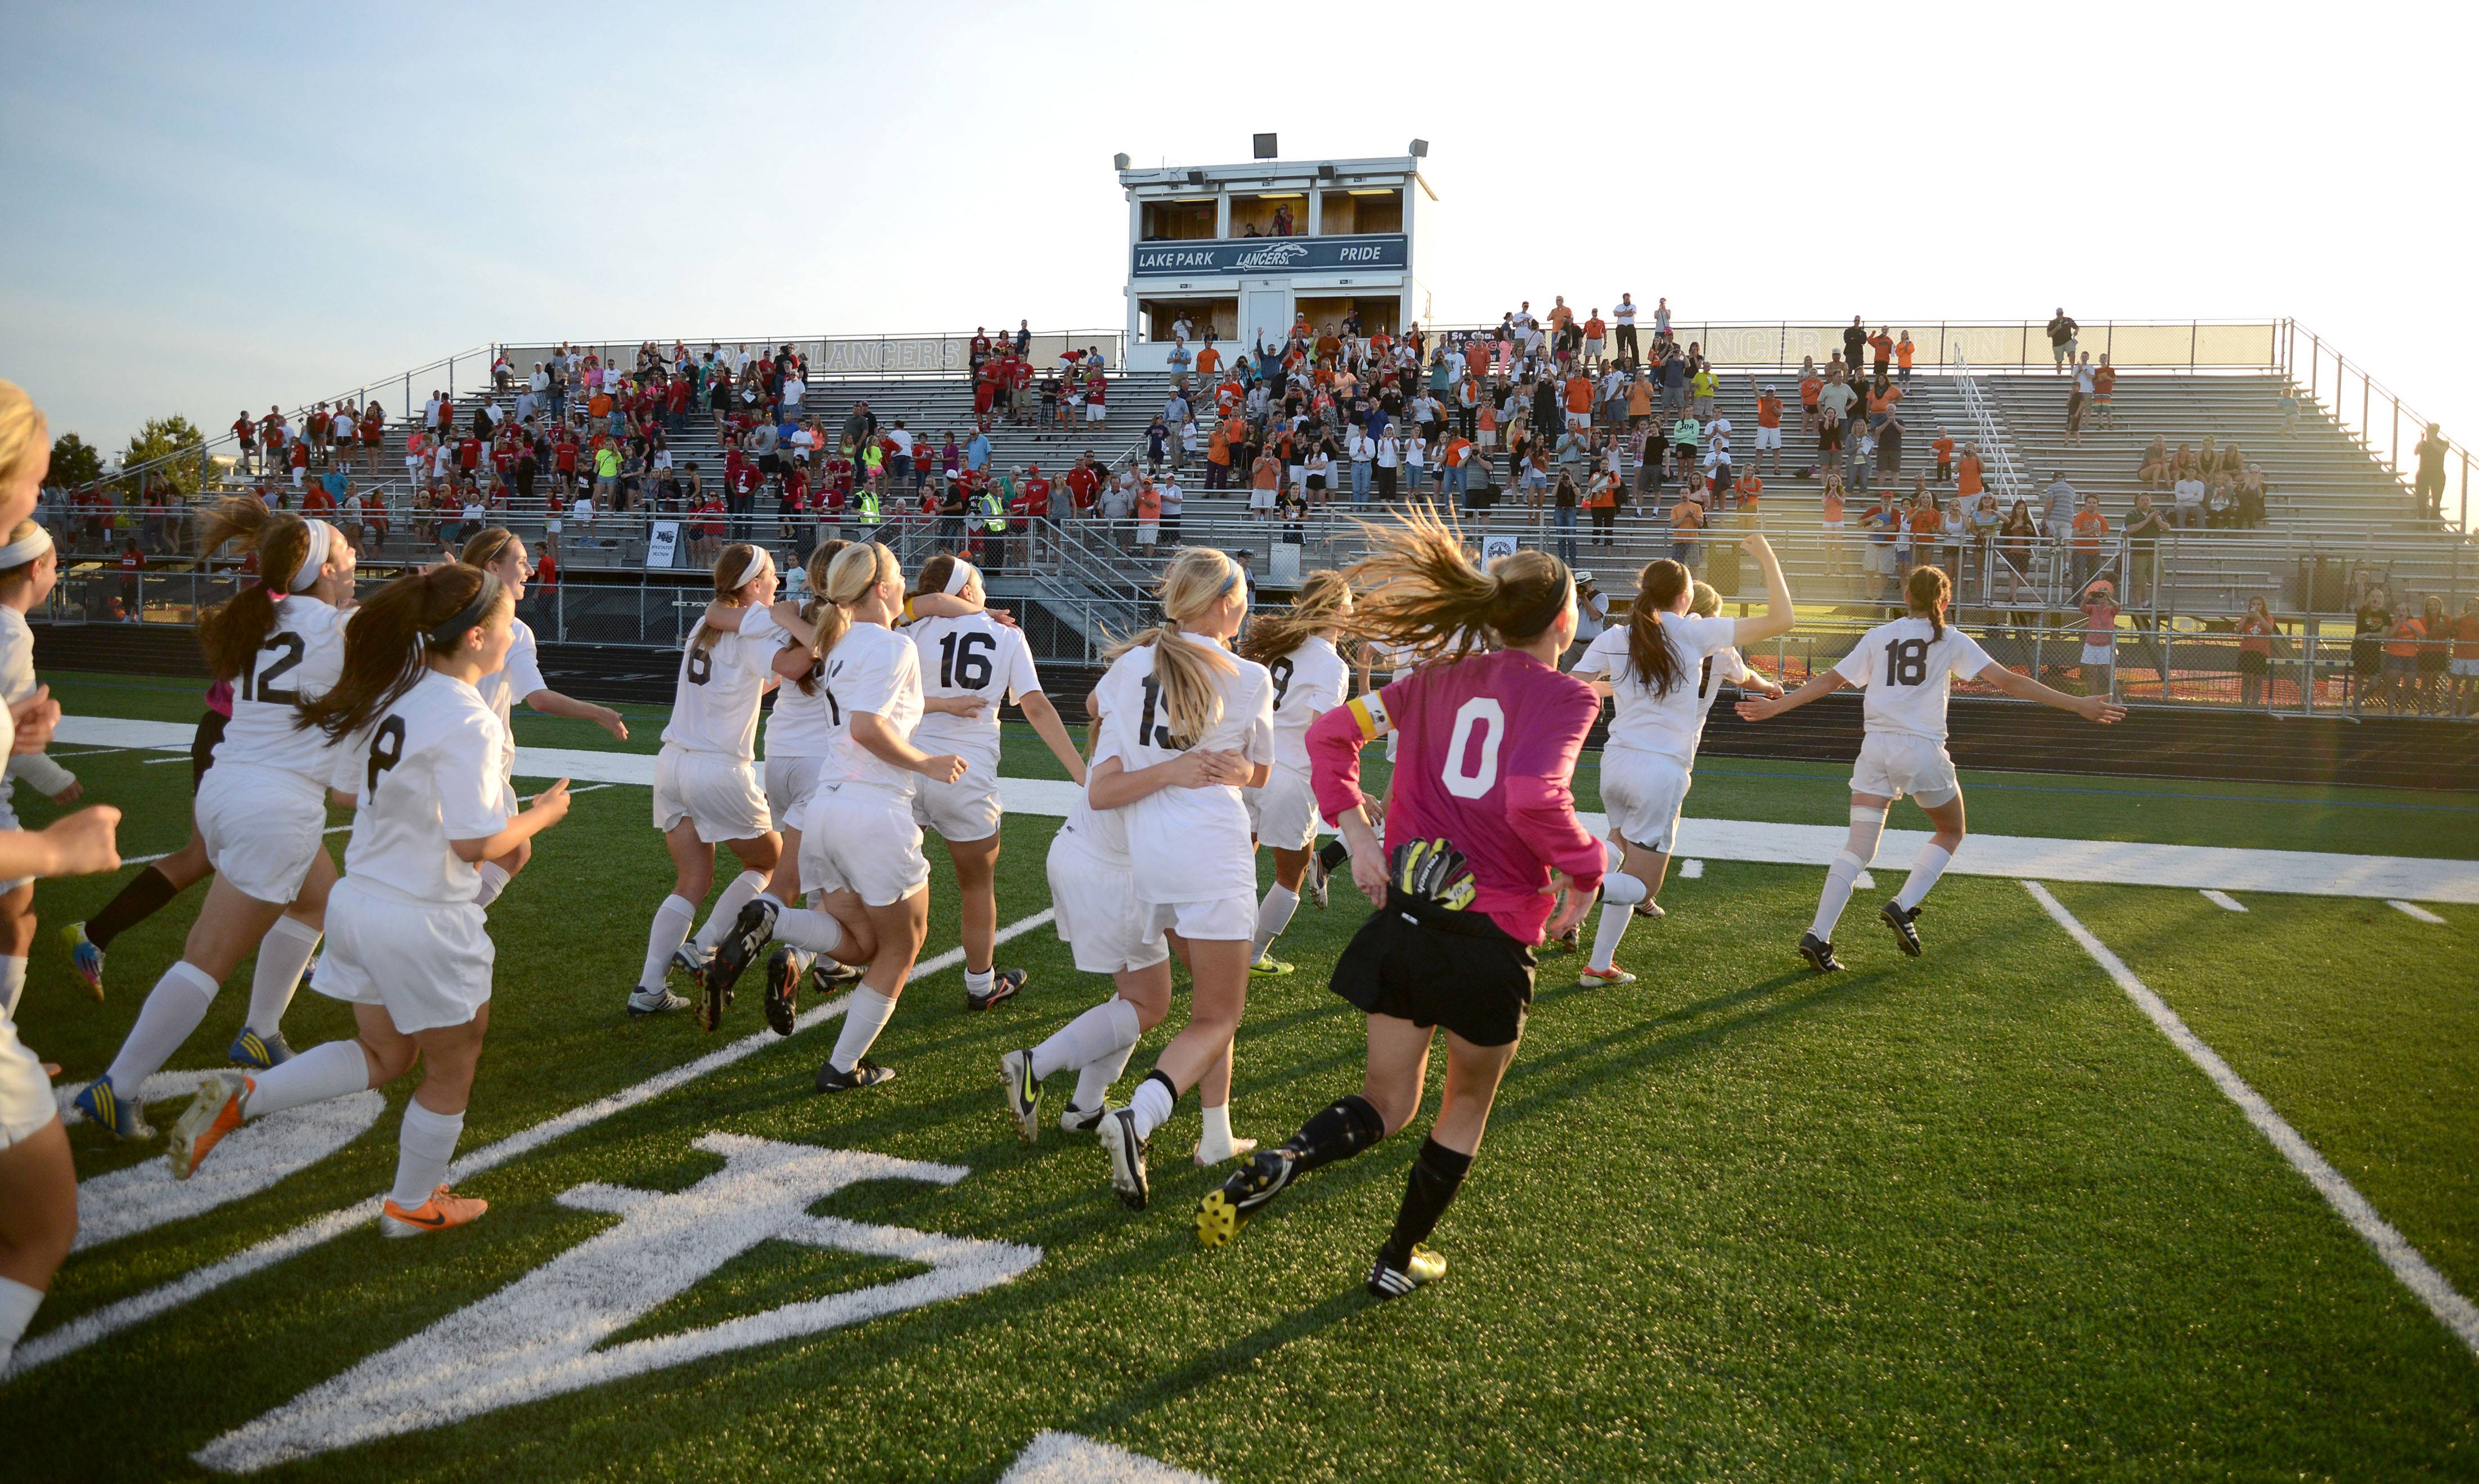 St. Charles East runs to fans in the bleachers after their the Class 3A girls soccer supersectional win over Huntley at Lake Park High School in Roselle on Tuesday, June 3.